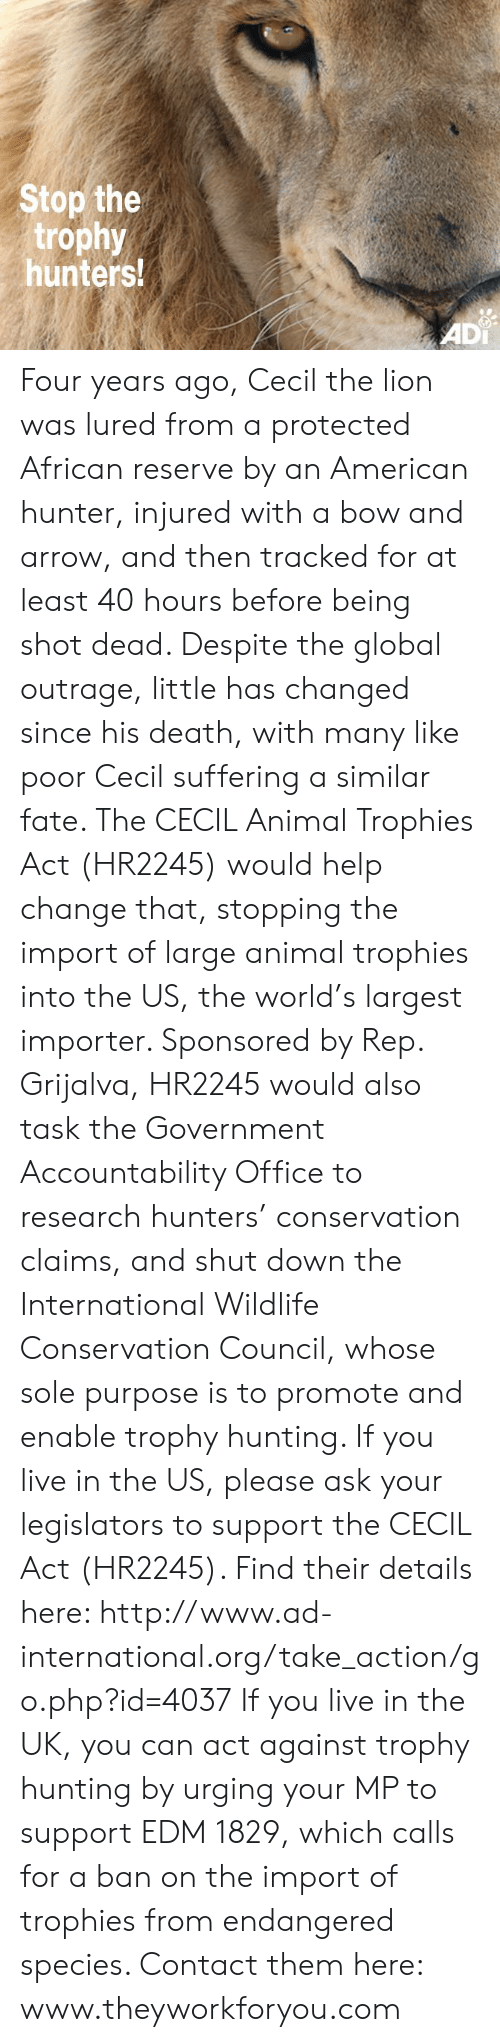 Memes, Hunting, and American: Stop the  trophy  hunters!  ADi Four years ago, Cecil the lion was lured from a protected African reserve by an American hunter, injured with a bow and arrow, and then tracked for at least 40 hours before being shot dead. Despite the global outrage, little has changed since his death, with many like poor Cecil suffering a similar fate. The CECIL Animal Trophies Act (HR2245) would help change that, stopping the import of large animal trophies into the US, the world's largest importer. Sponsored by Rep. Grijalva, HR2245 would also task the Government Accountability Office to research hunters' conservation claims, and shut down the International Wildlife Conservation Council, whose sole purpose is to promote and enable trophy hunting.   If you live in the US, please ask your legislators to support the CECIL Act (HR2245). Find their details here:  http://www.ad-international.org/take_action/go.php?id=4037   If you live in the UK, you can act against trophy hunting by urging your MP to support EDM 1829, which calls for a ban on the import of trophies from endangered species. Contact them here: www.theyworkforyou.com